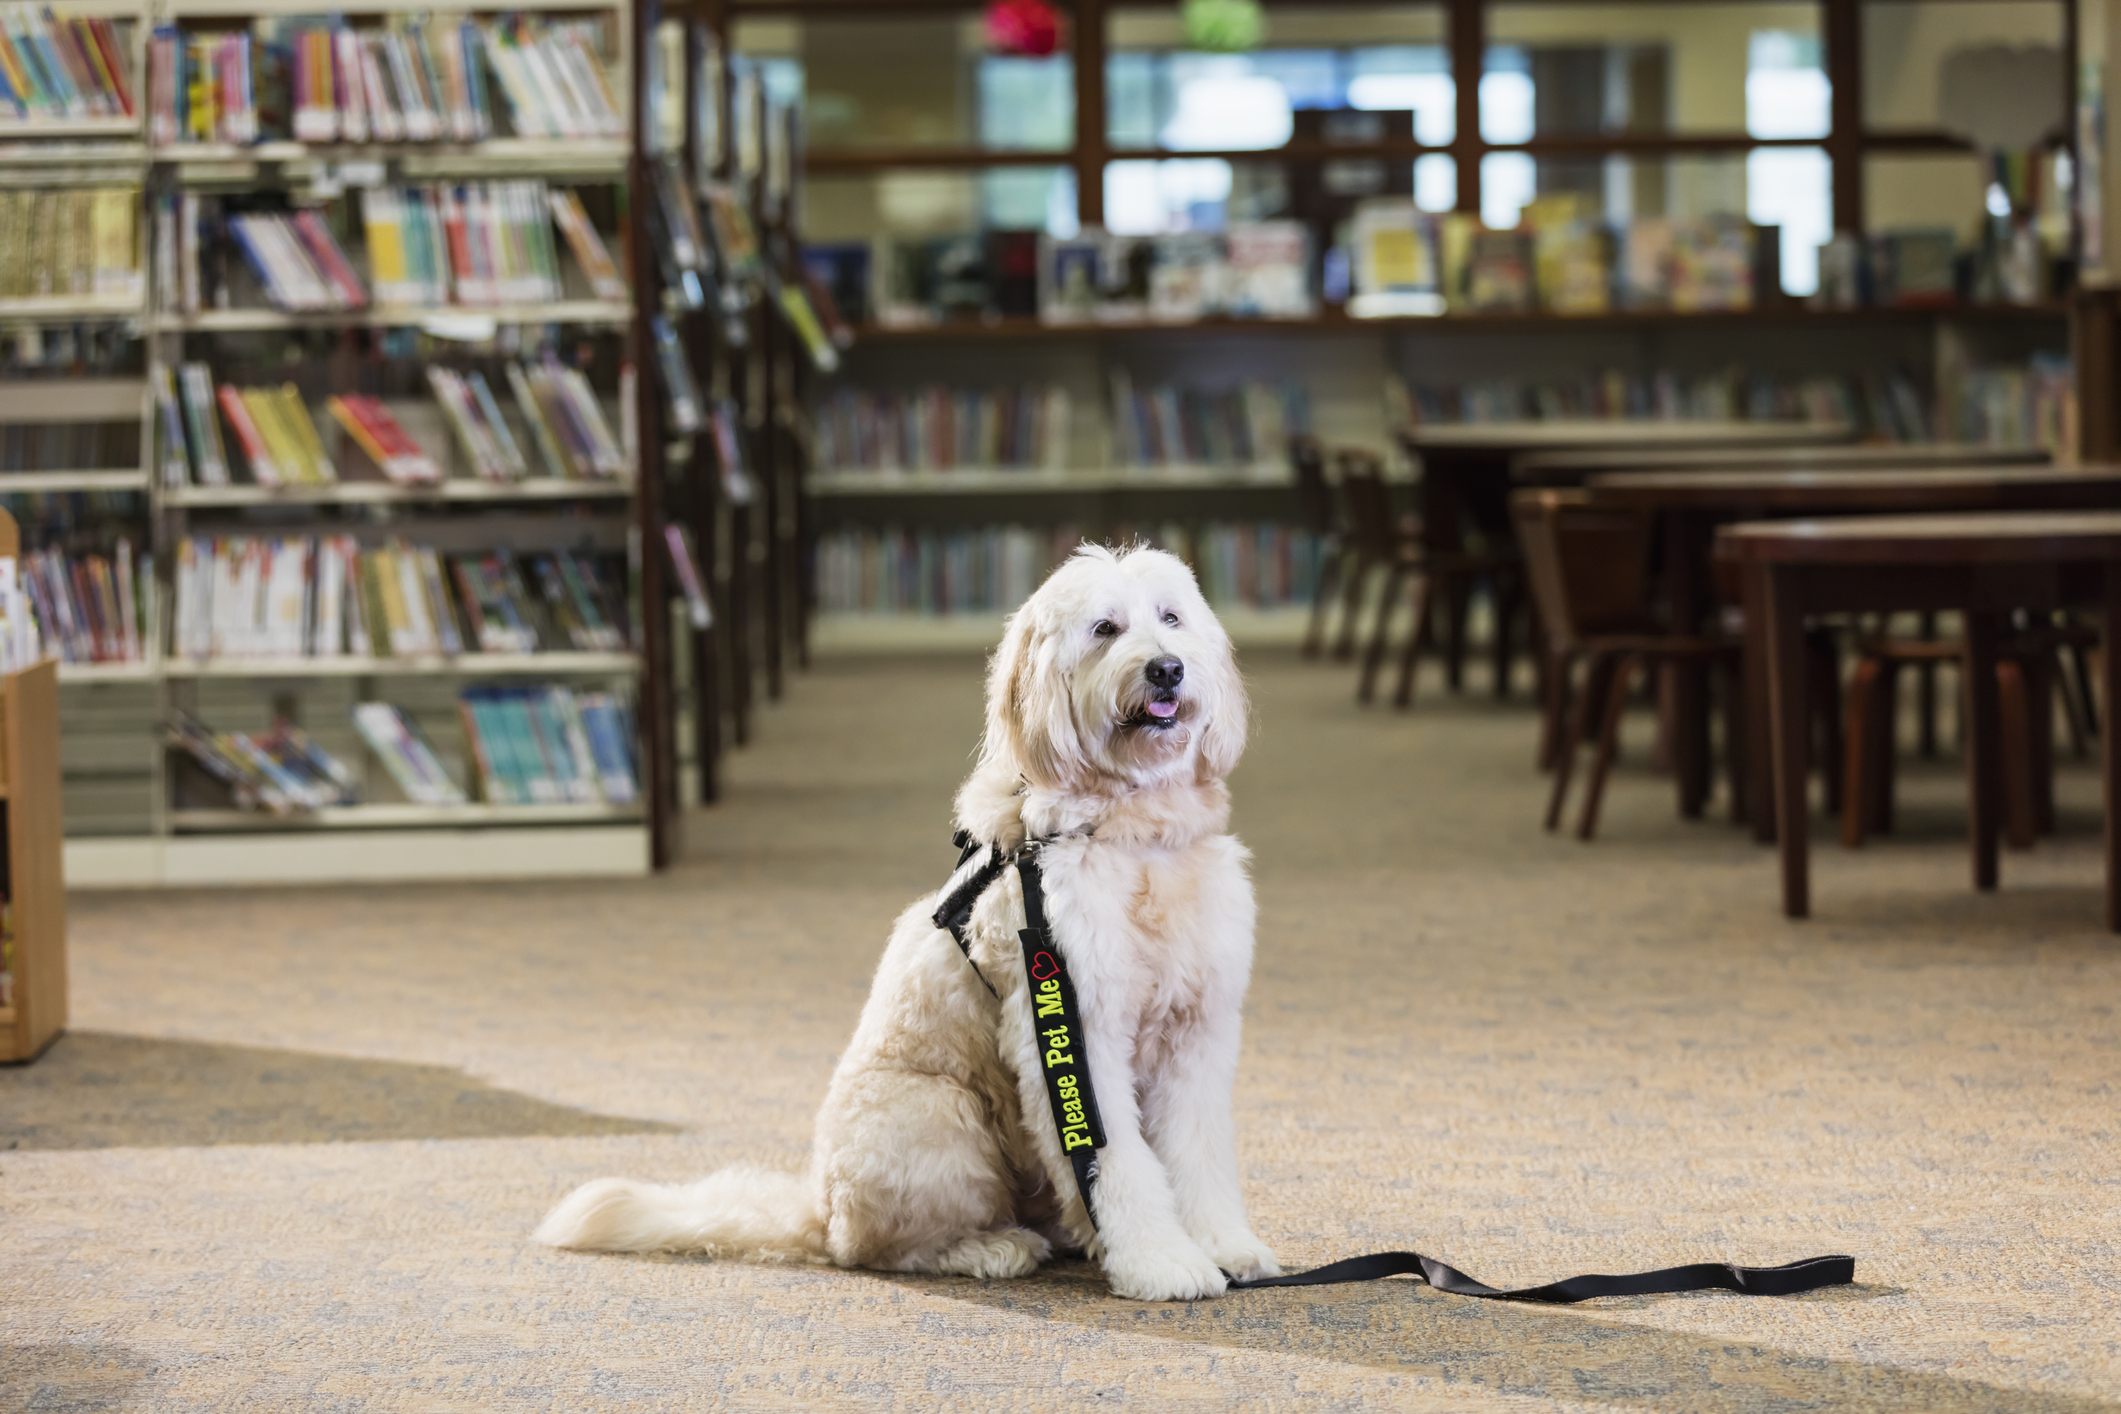 goldendoodle therapy dog sitting in a library trained to listen to children read